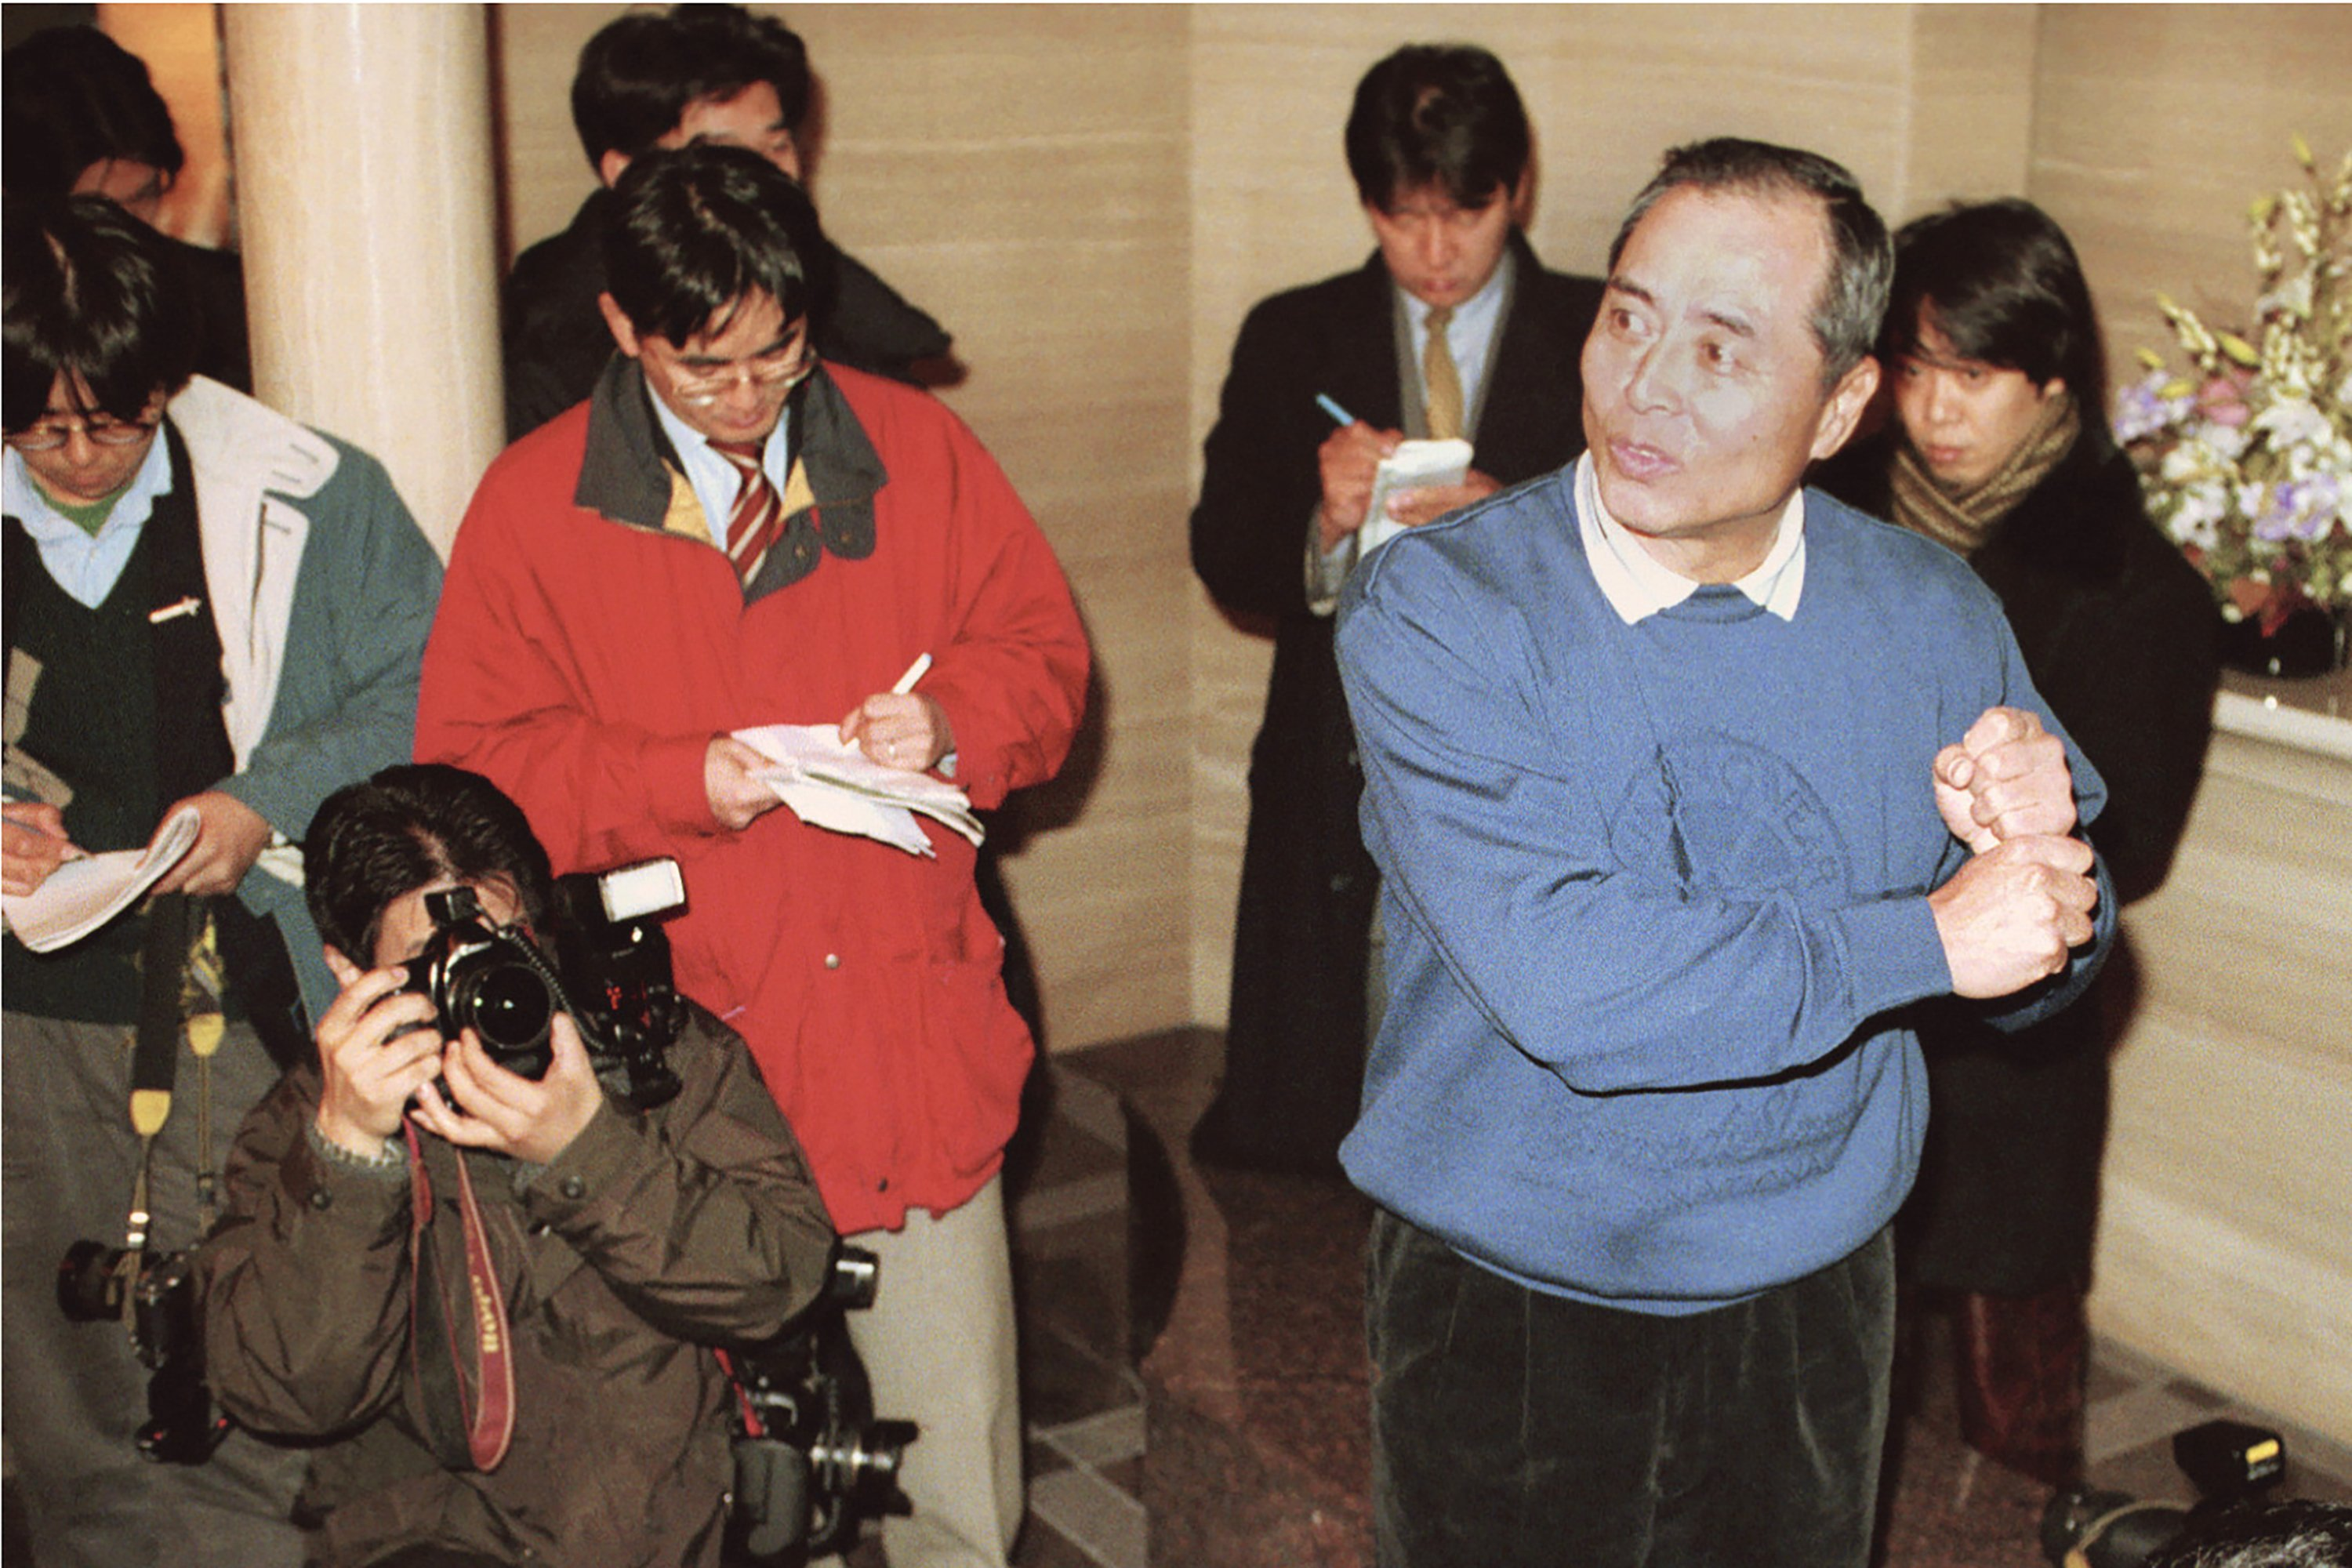 Electronic sign stealing: A scandal two decades ago in Japan